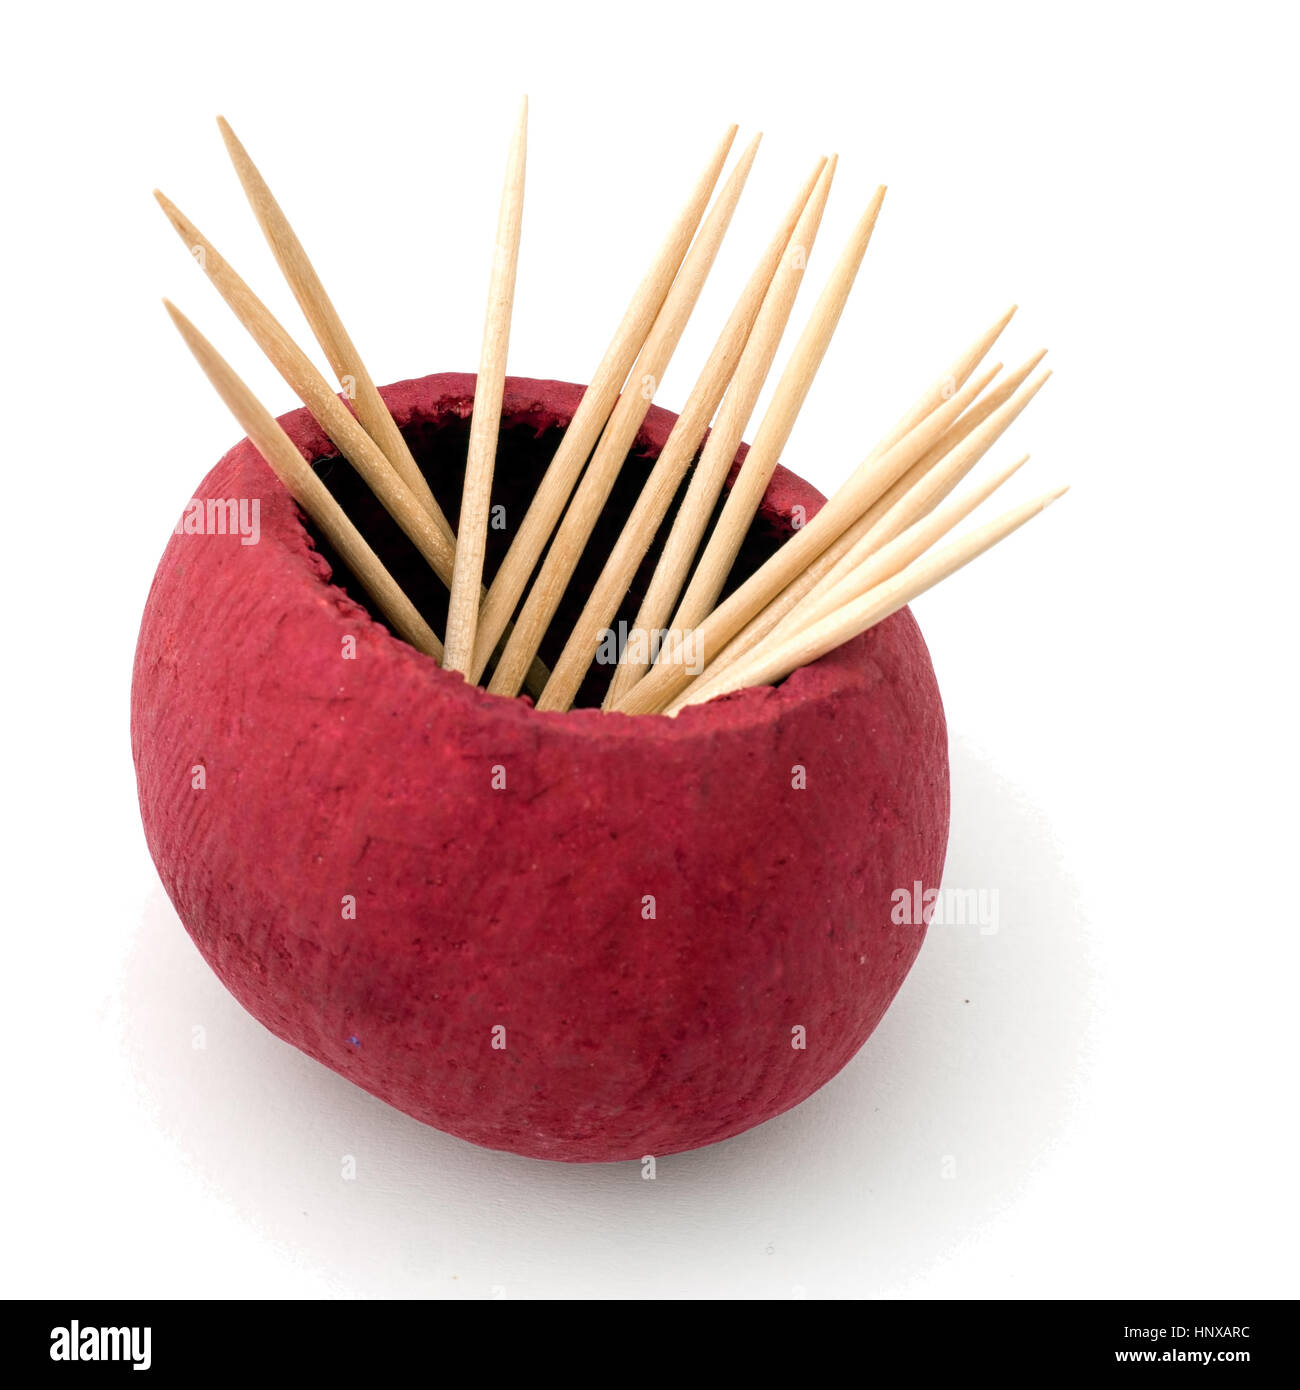 Toothpicks, cocktail sticks in red pot. On white. - Stock Image